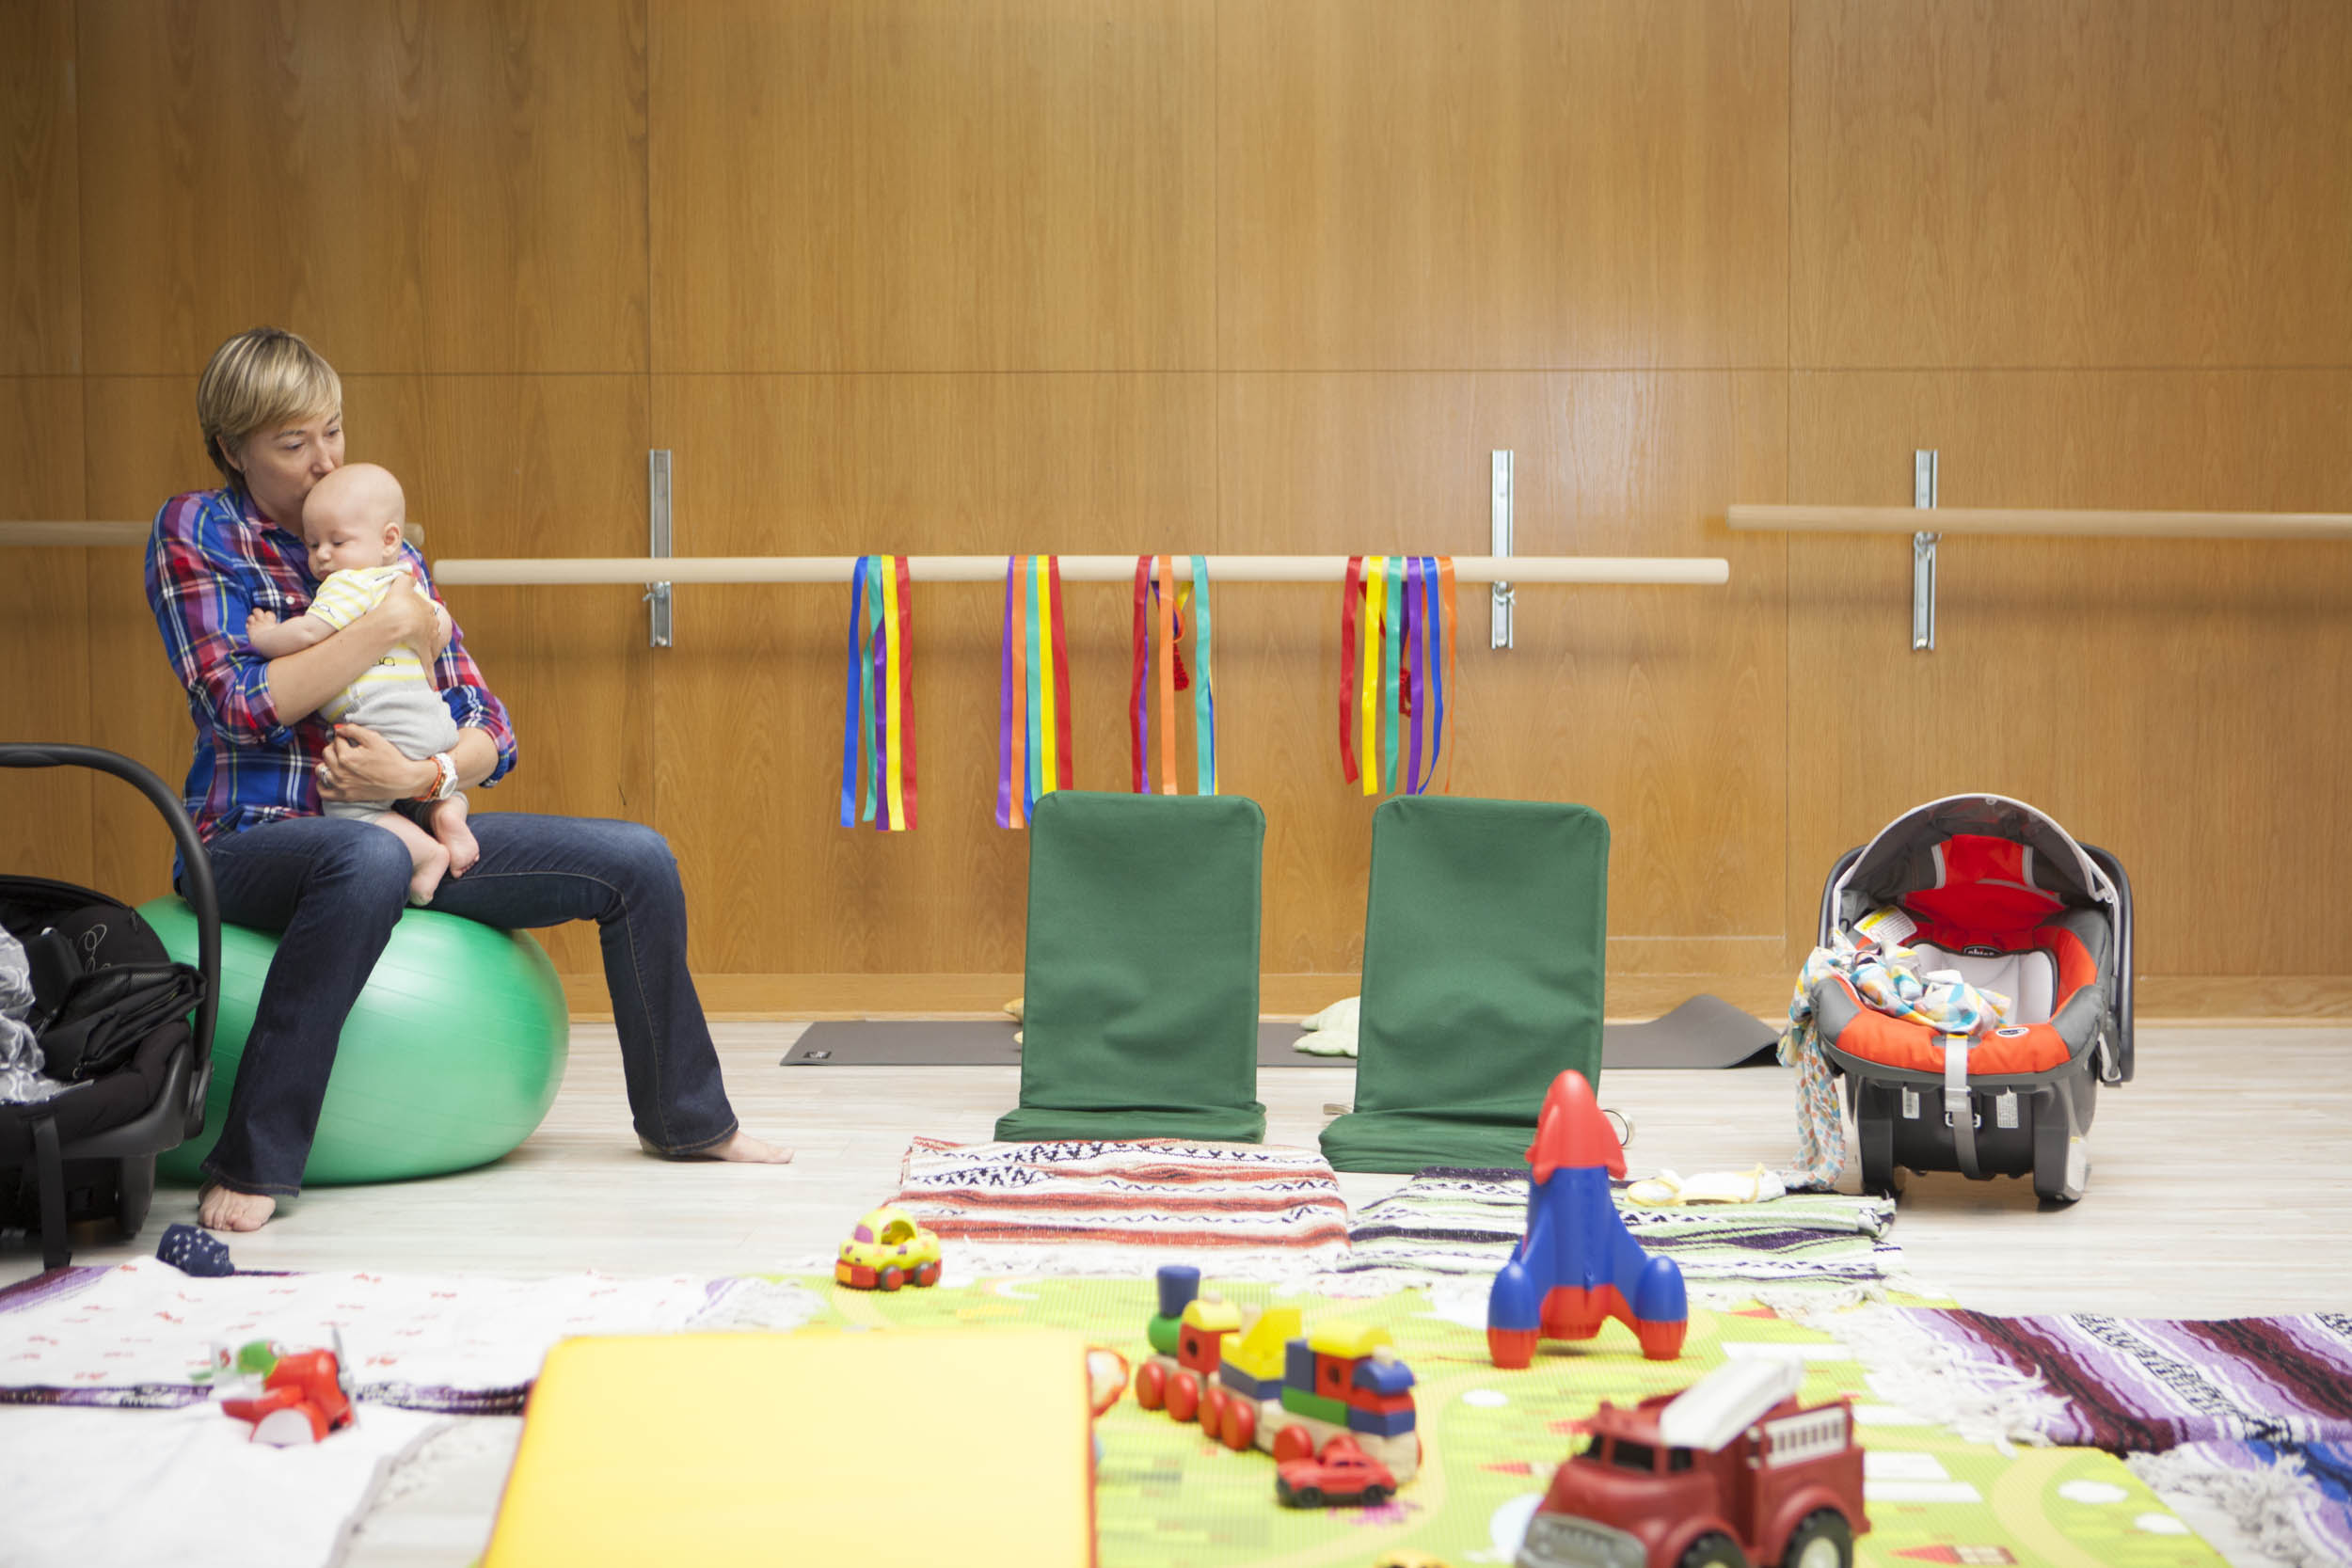 A playful, peaceful space for moms and babies at the mother nurture center